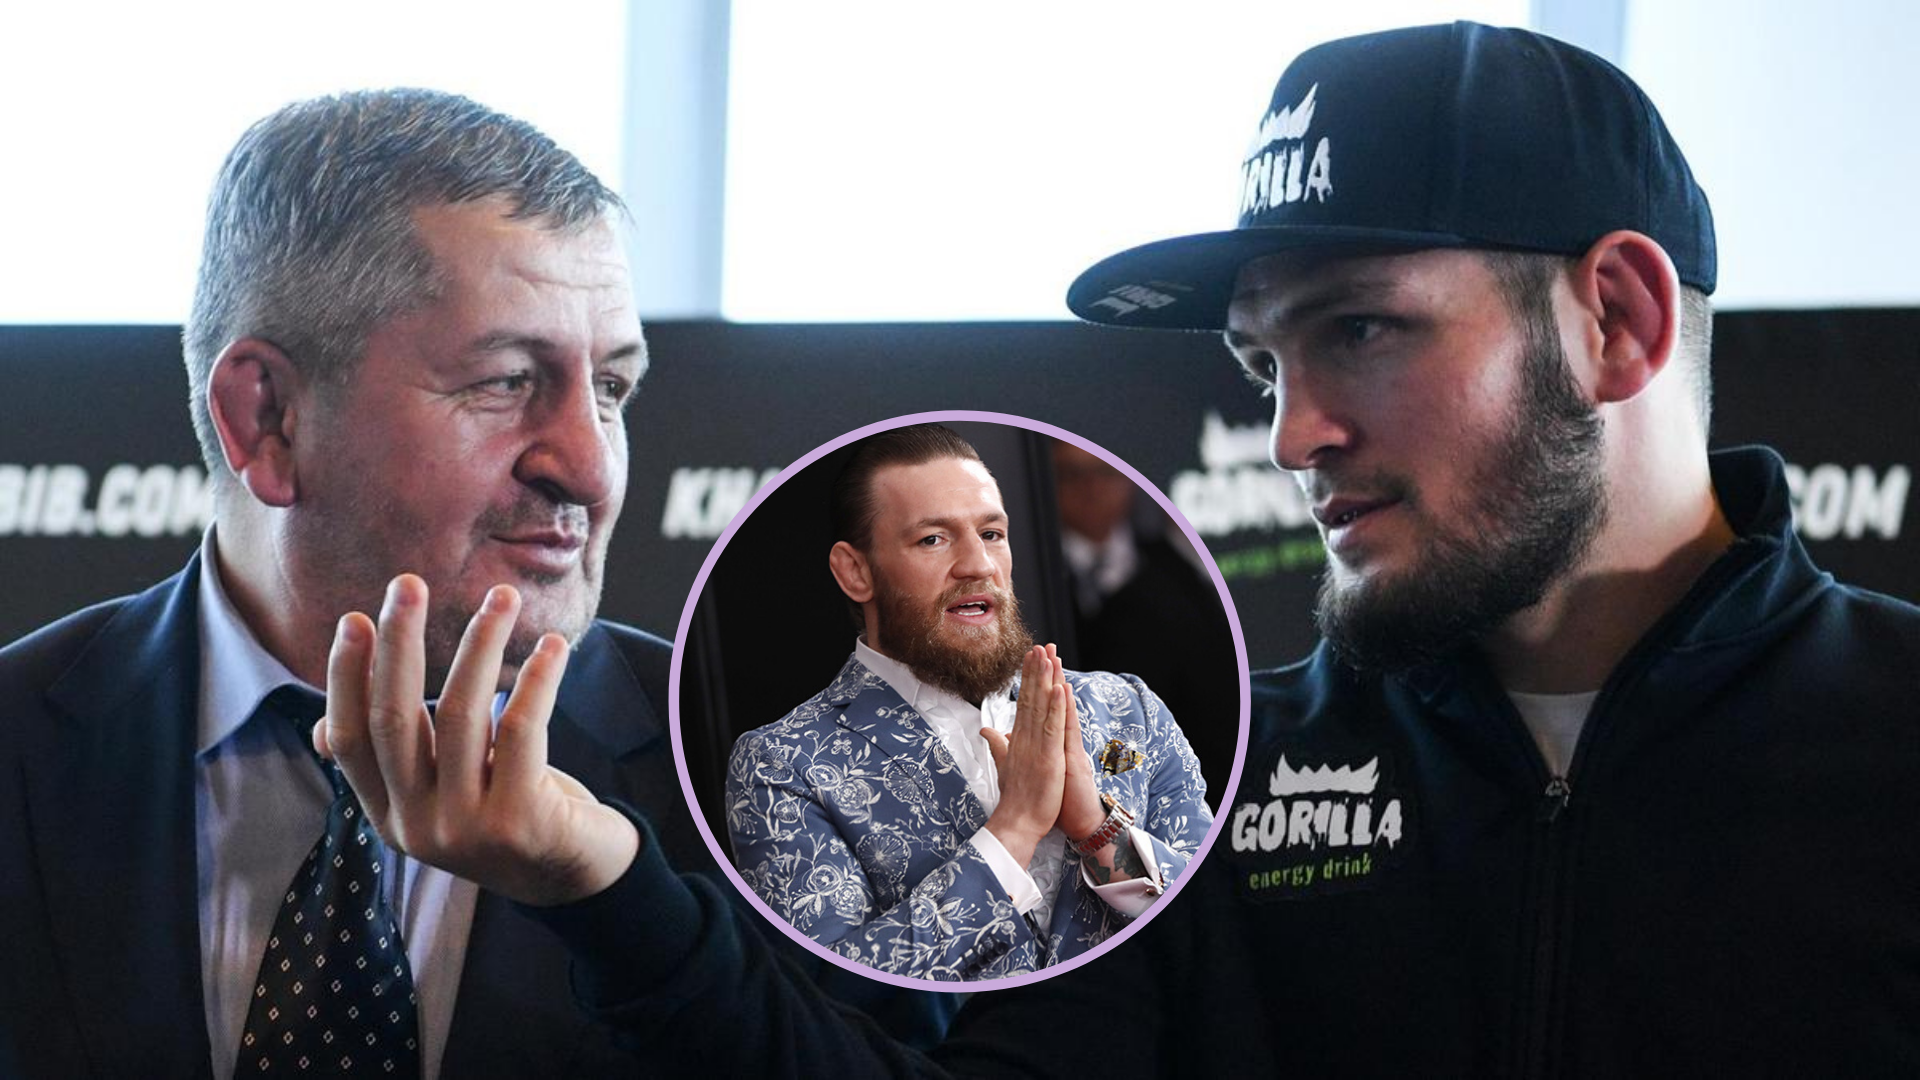 Twitter reacts to classy Conor McGregor wishing Khabib's father a speedy recovery - Conor McGregor